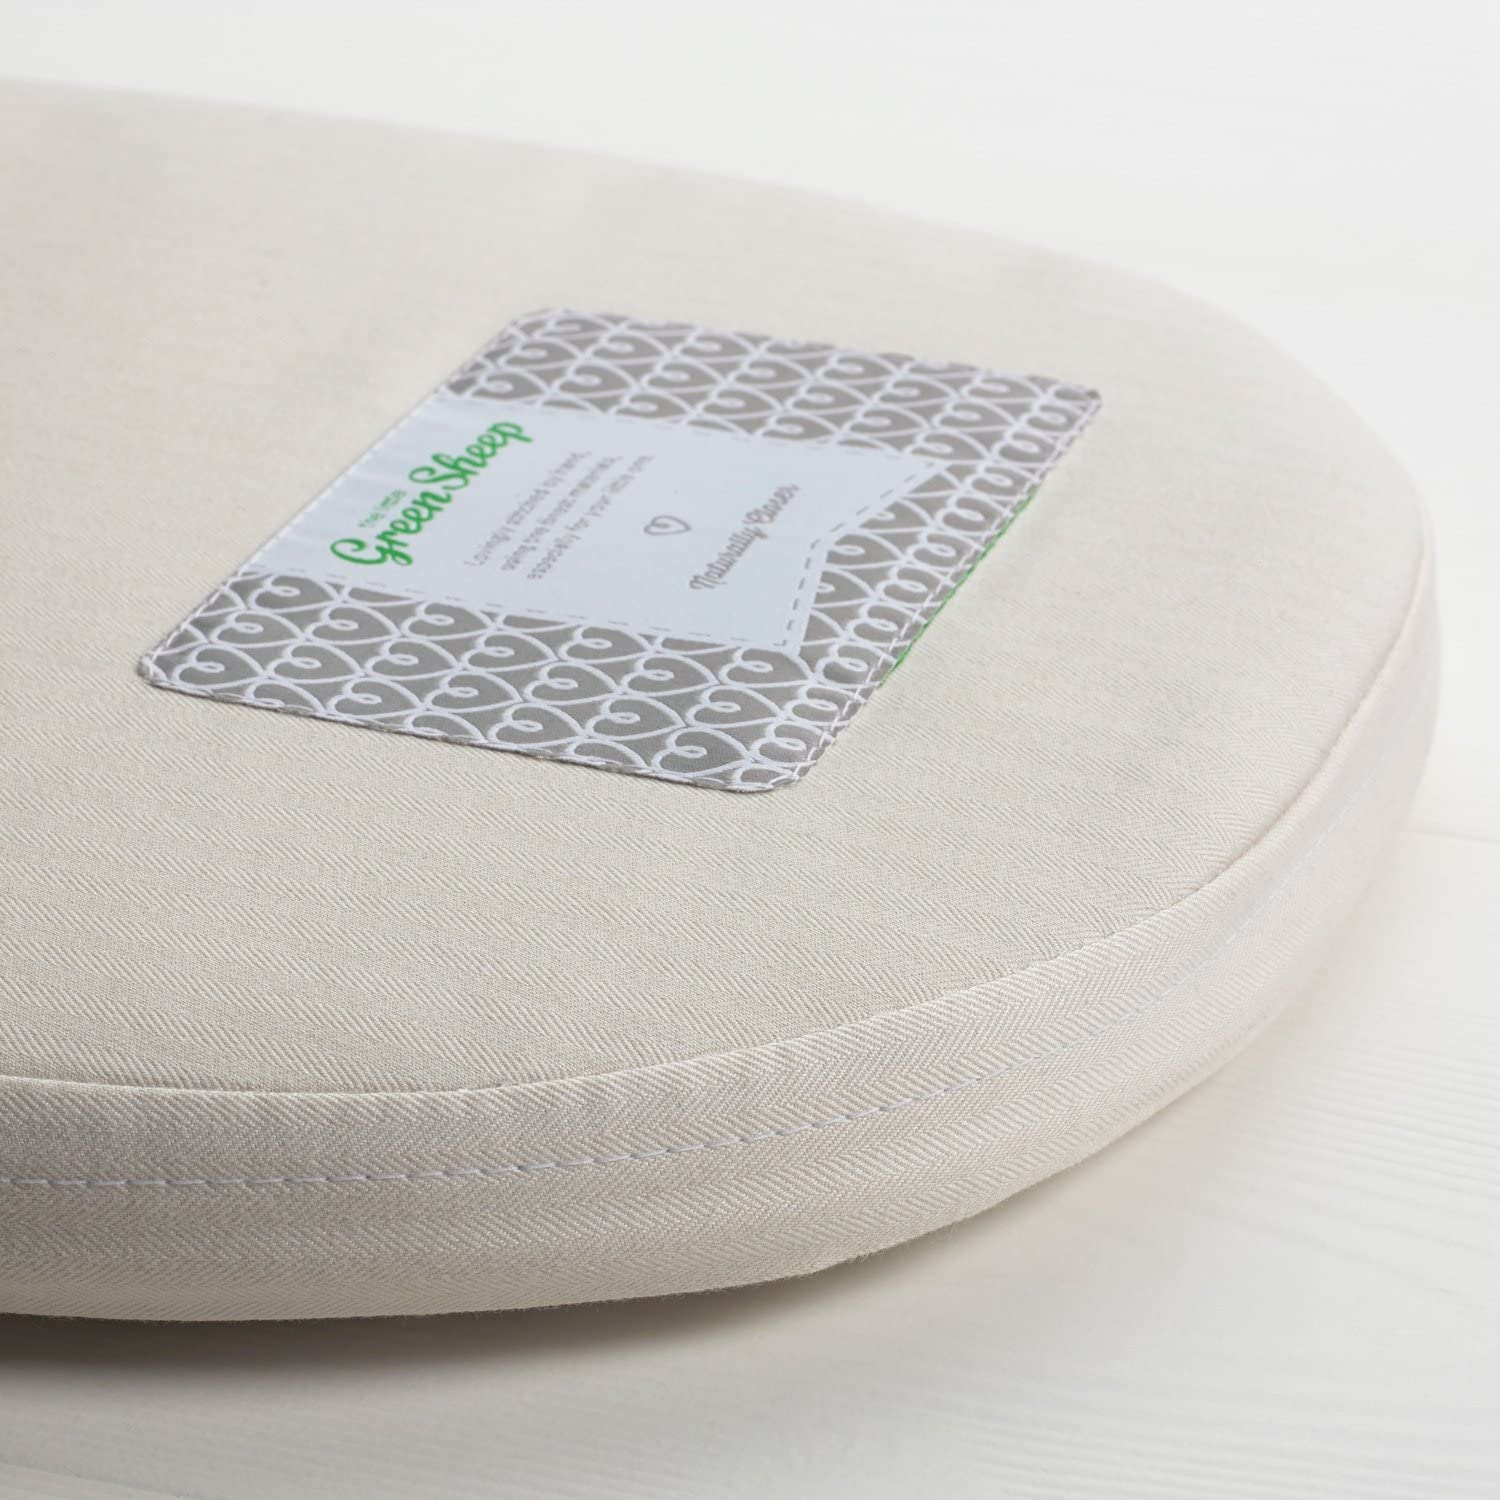 to fit Bugaboo Bee - 32 x 72 cm The Little Green Sheep Natural Carrycot Mattress